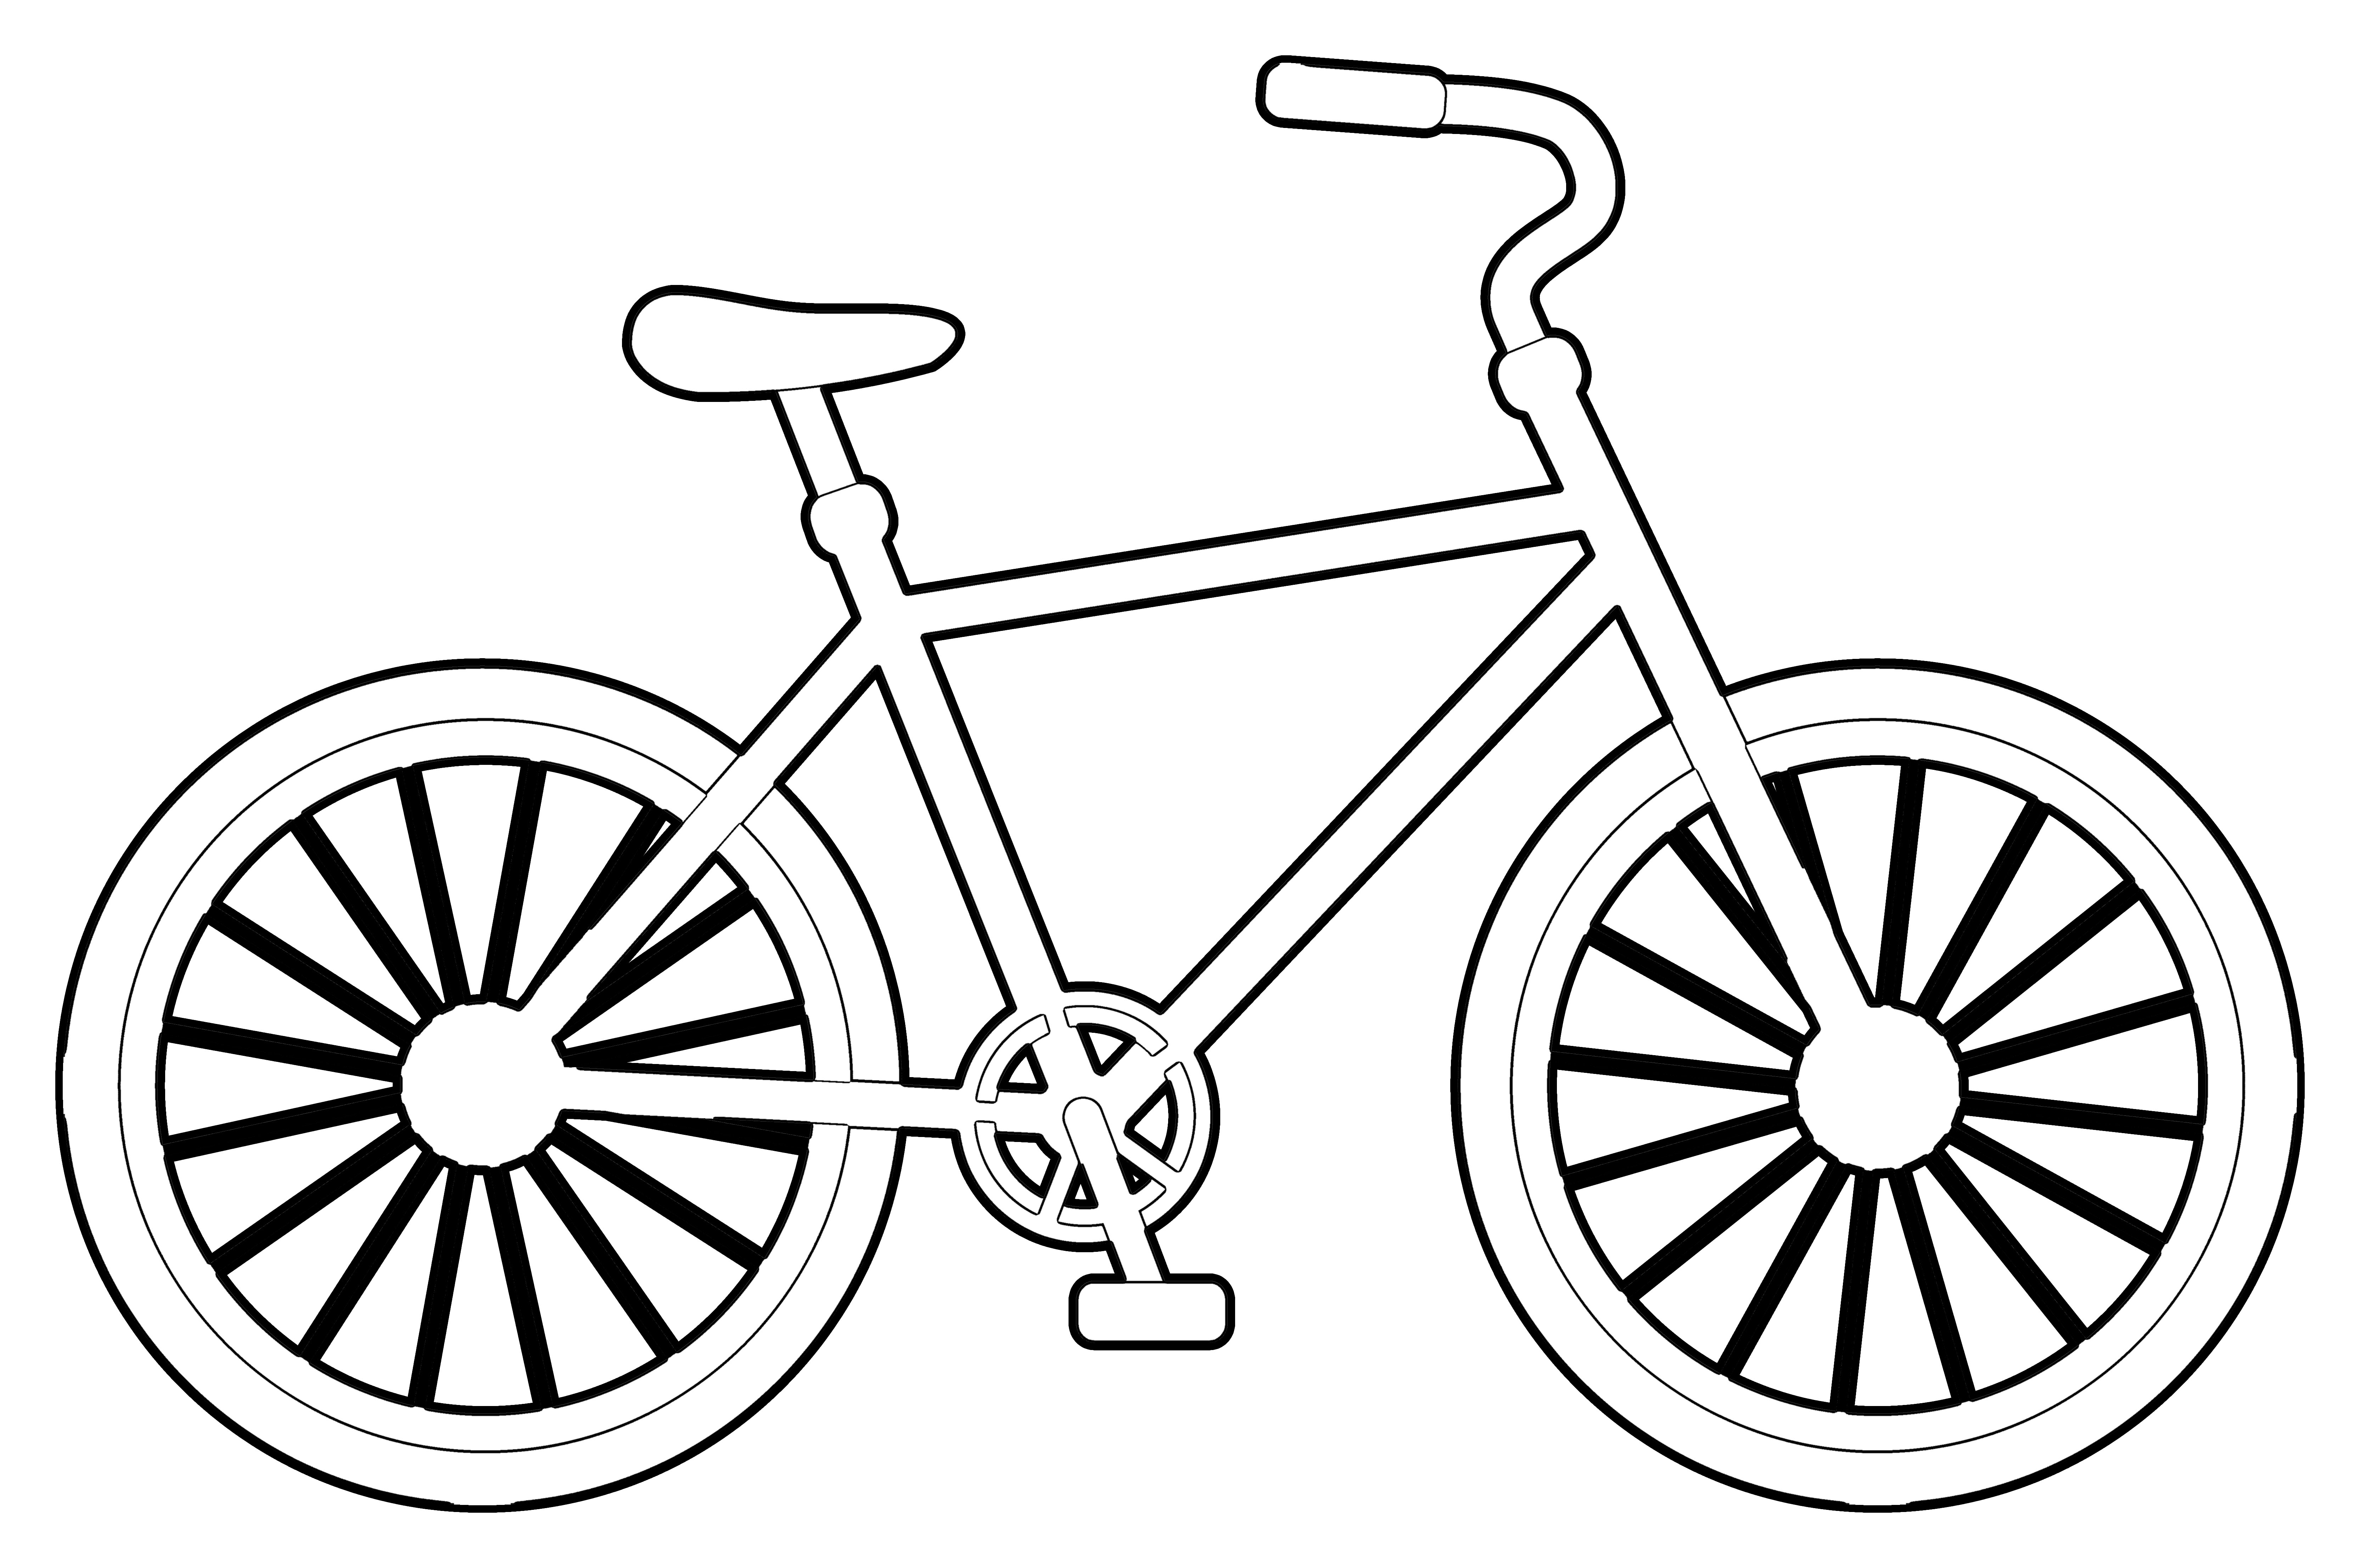 bicycle coloring pages bicycle coloring pages to download and print for free bicycle pages coloring